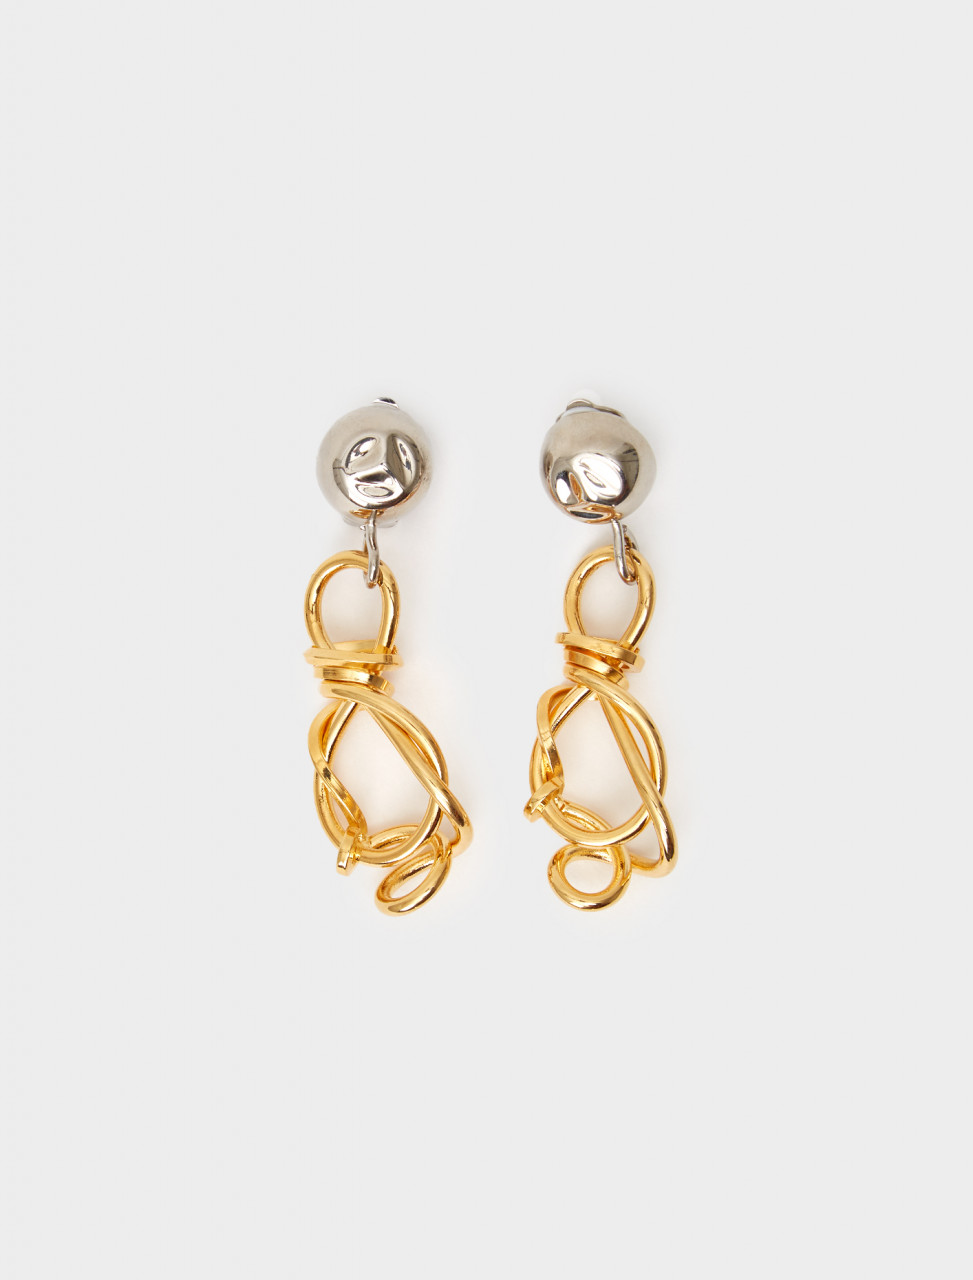 137-ORMV0246A0-M2000-GLNF1 MARNI TWISTED WIRE EARRINGS